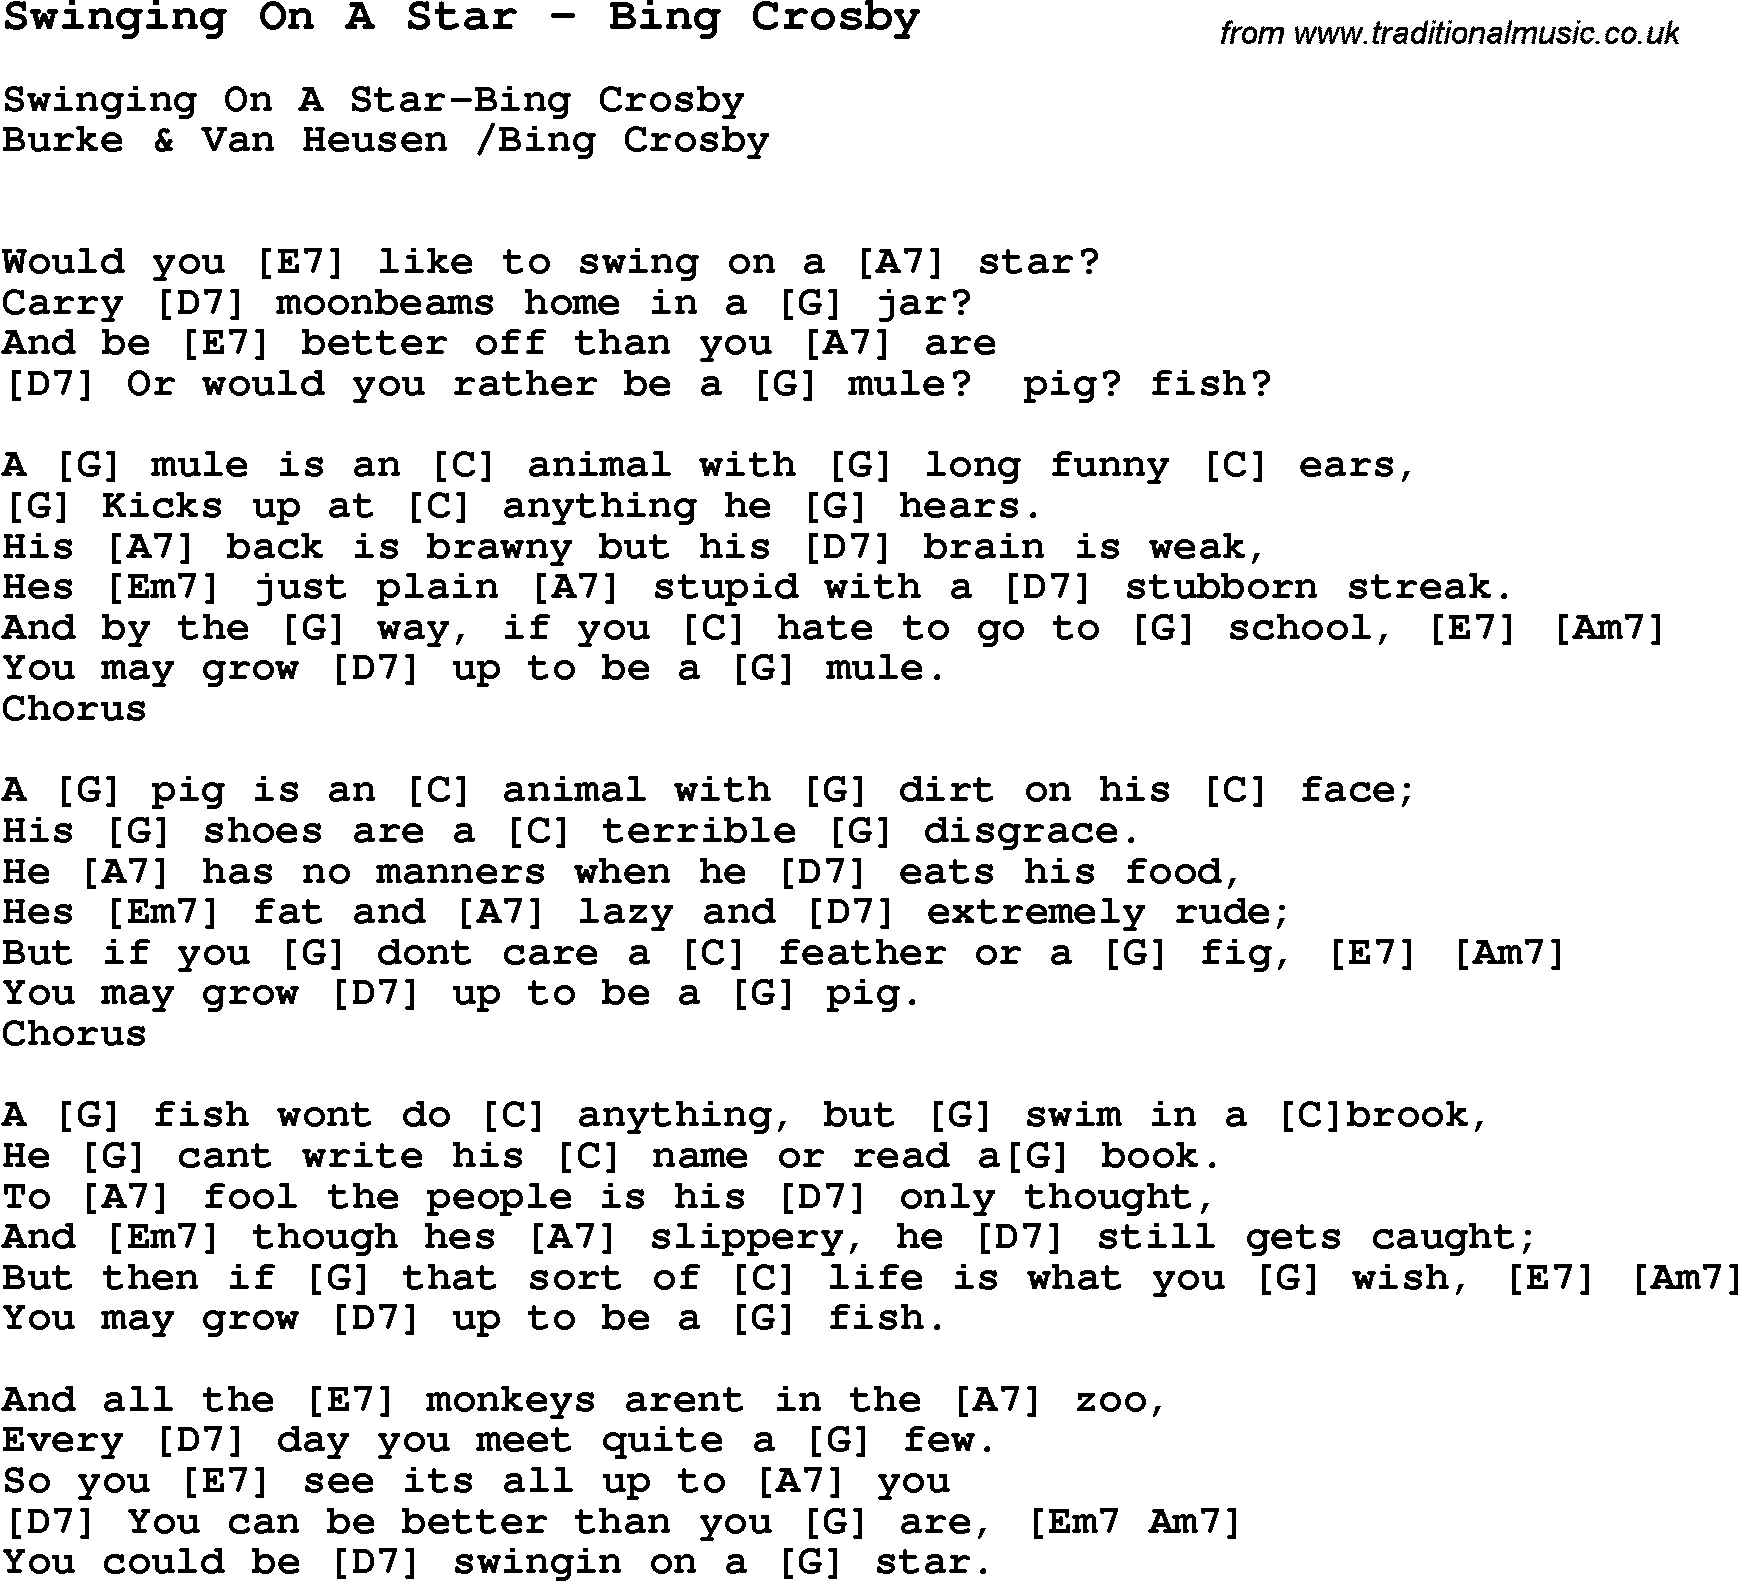 Song swinging on a star by bing crosby with lyrics for vocal song swinging on a star by bing crosby song lyric for vocal performance plus accompaniment chords for ukulele guitar banjo etc hexwebz Gallery